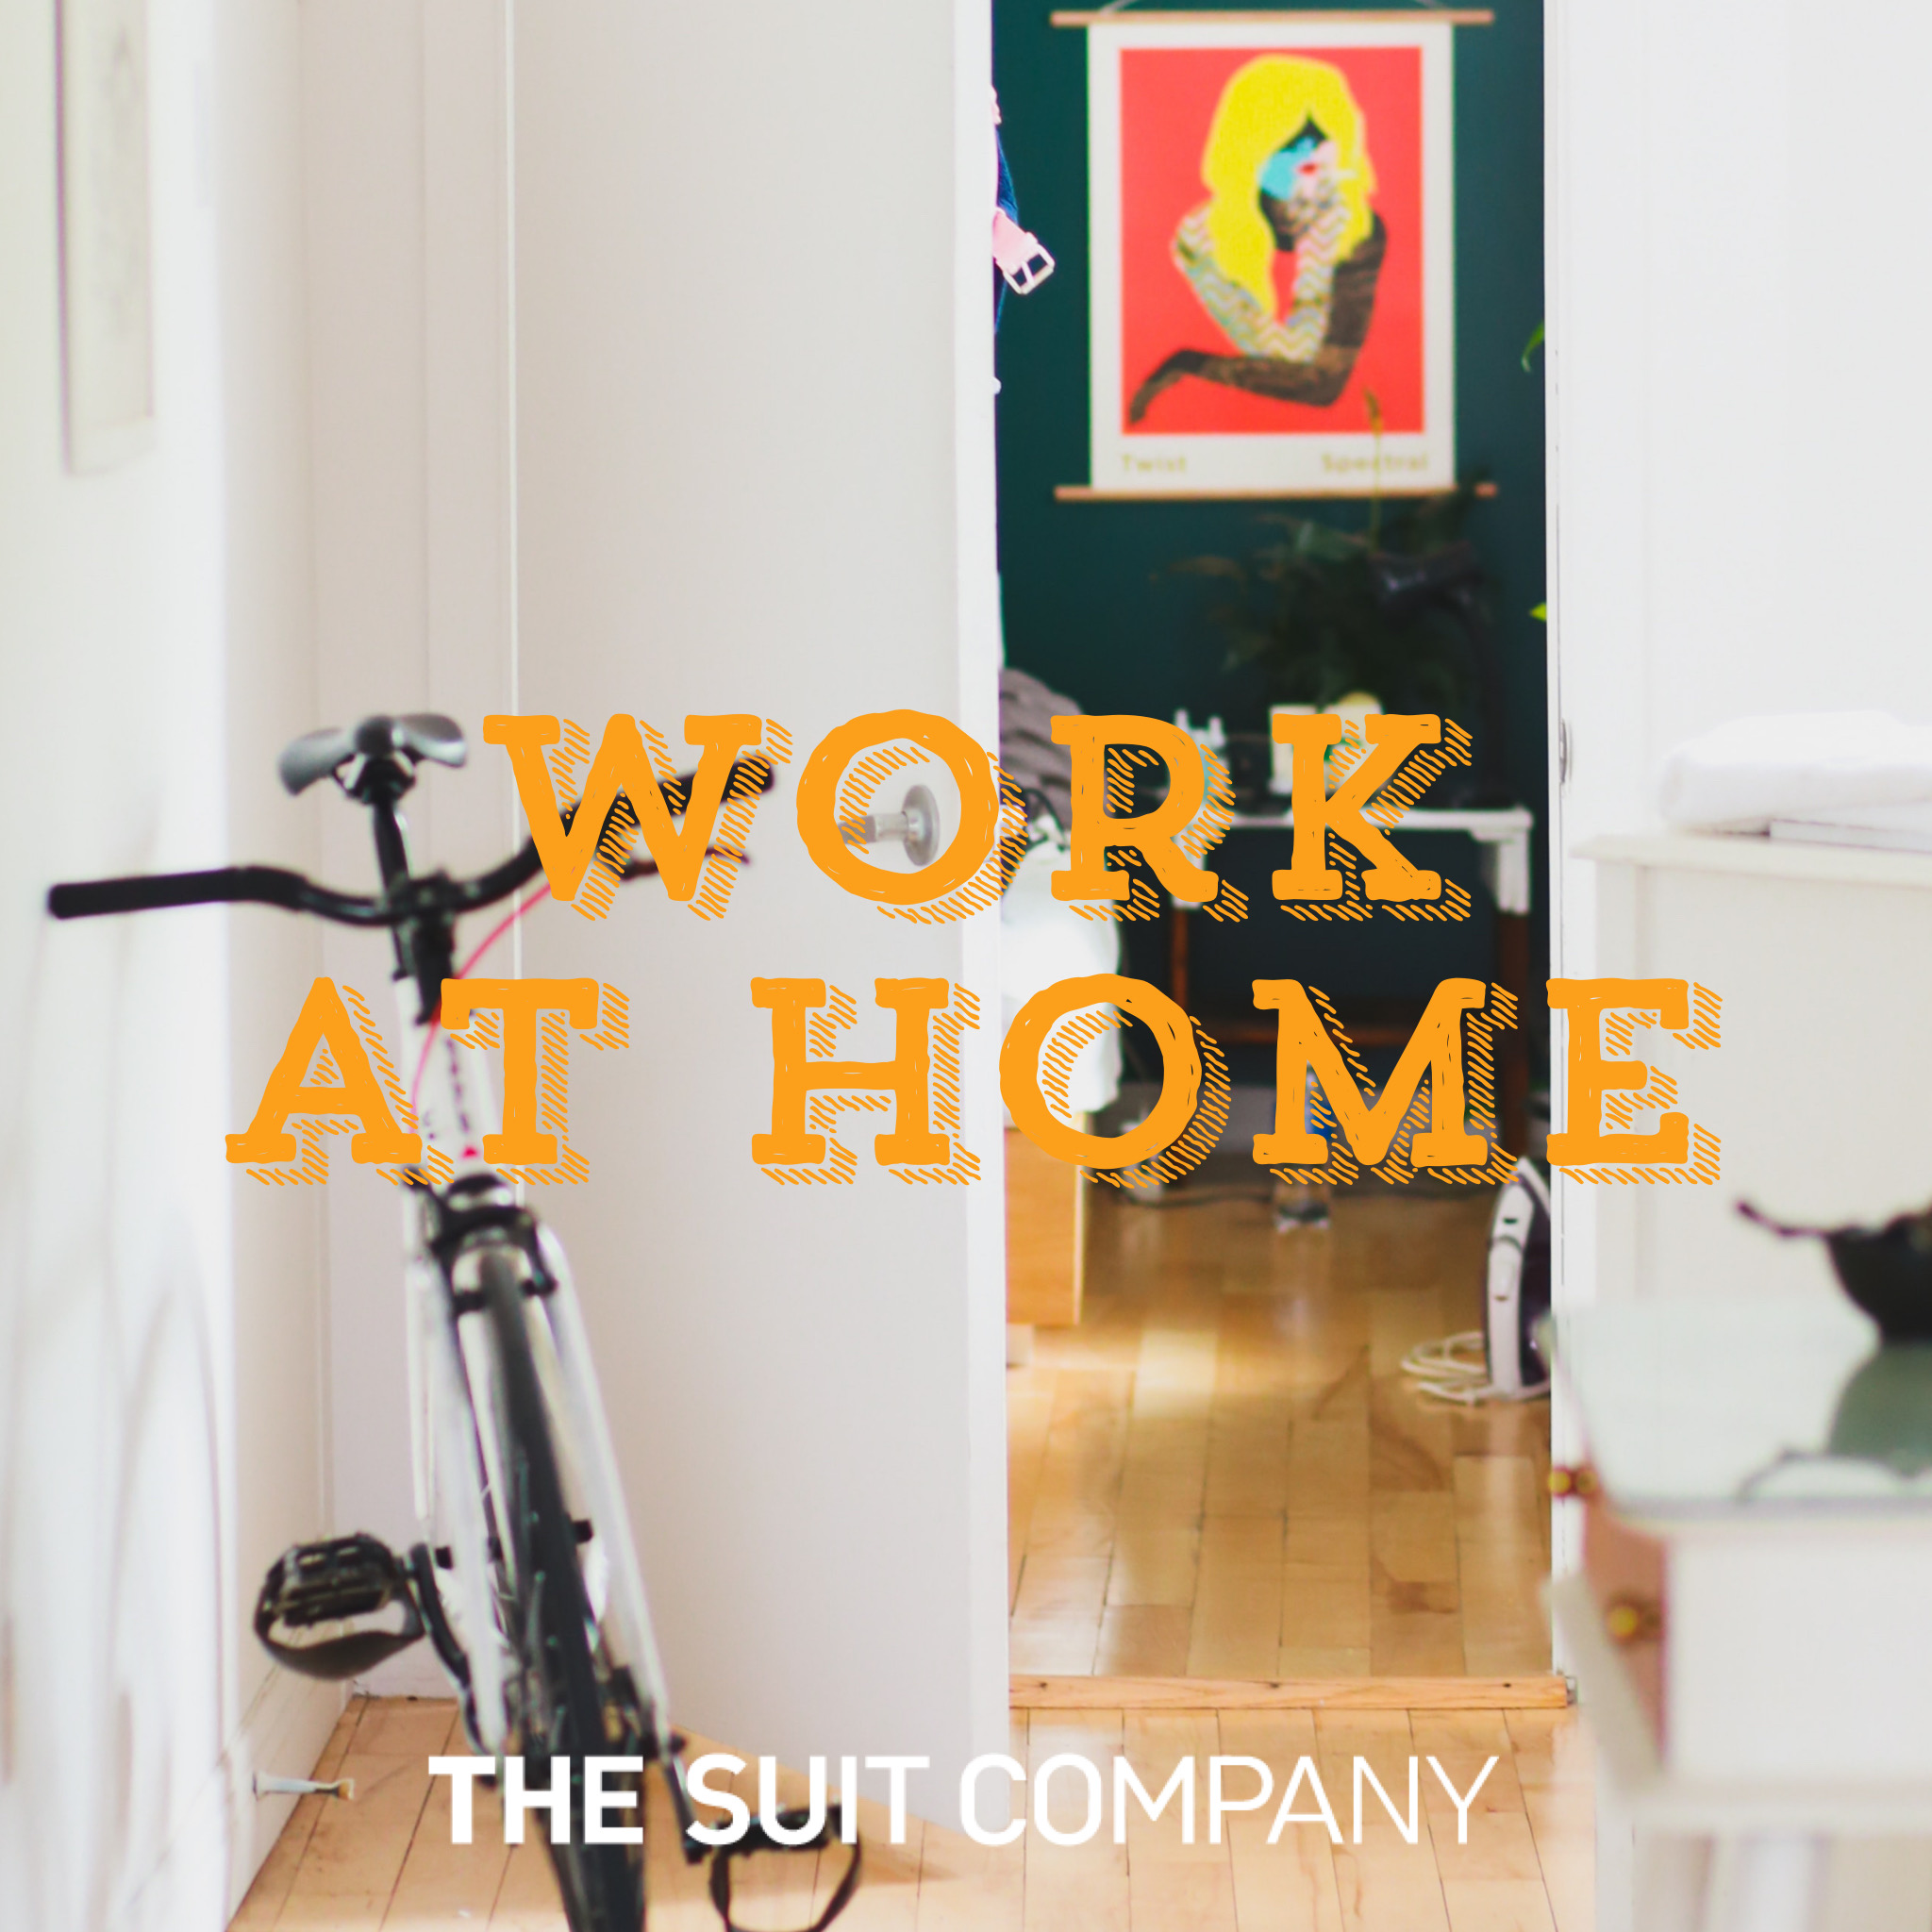 THE SUIT COMPANYの企画「WORK AT HOME」を制作いたしました。